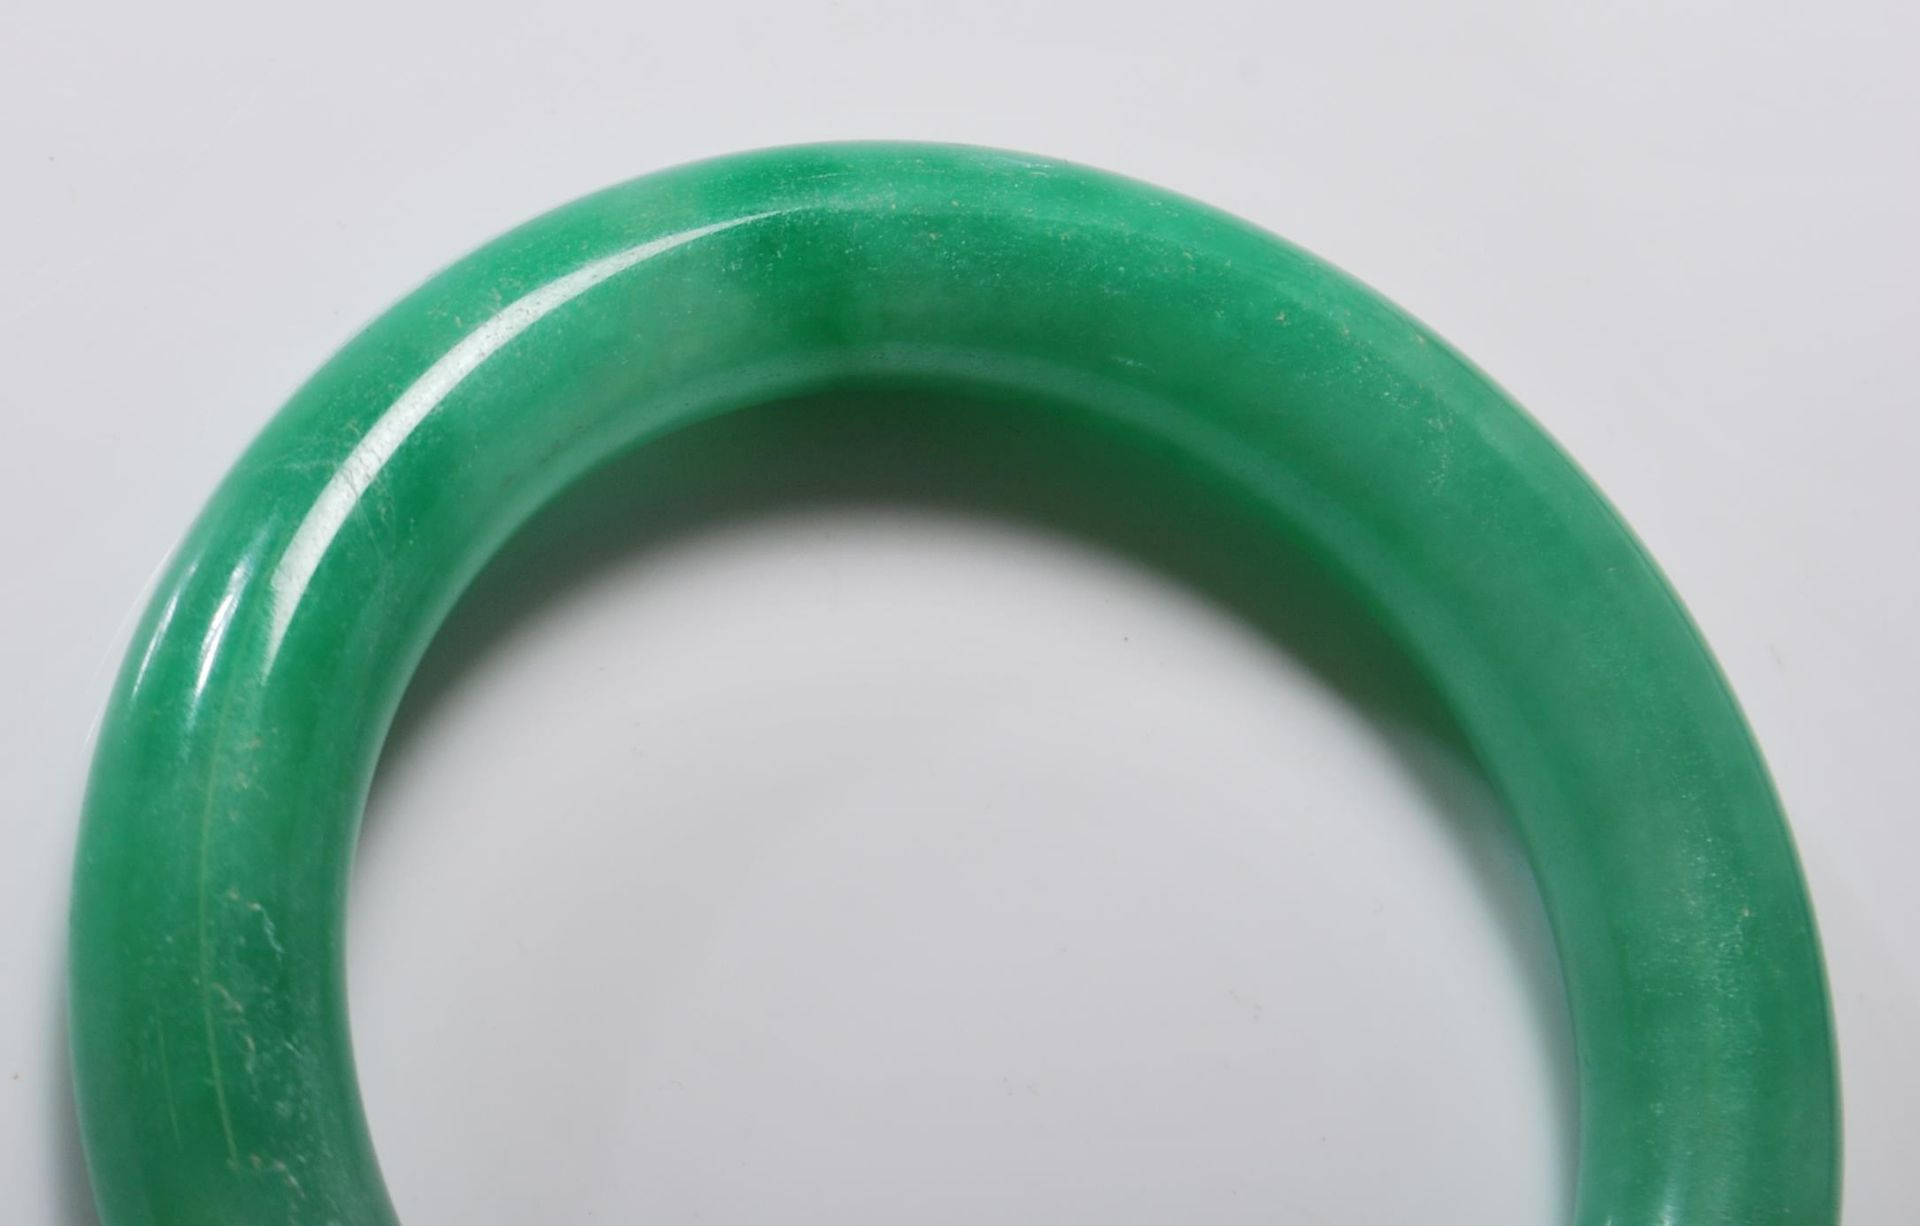 20TH CENTURY CHINESE JADE STYLE GREEN HARD STONE BANGLE - Image 4 of 5